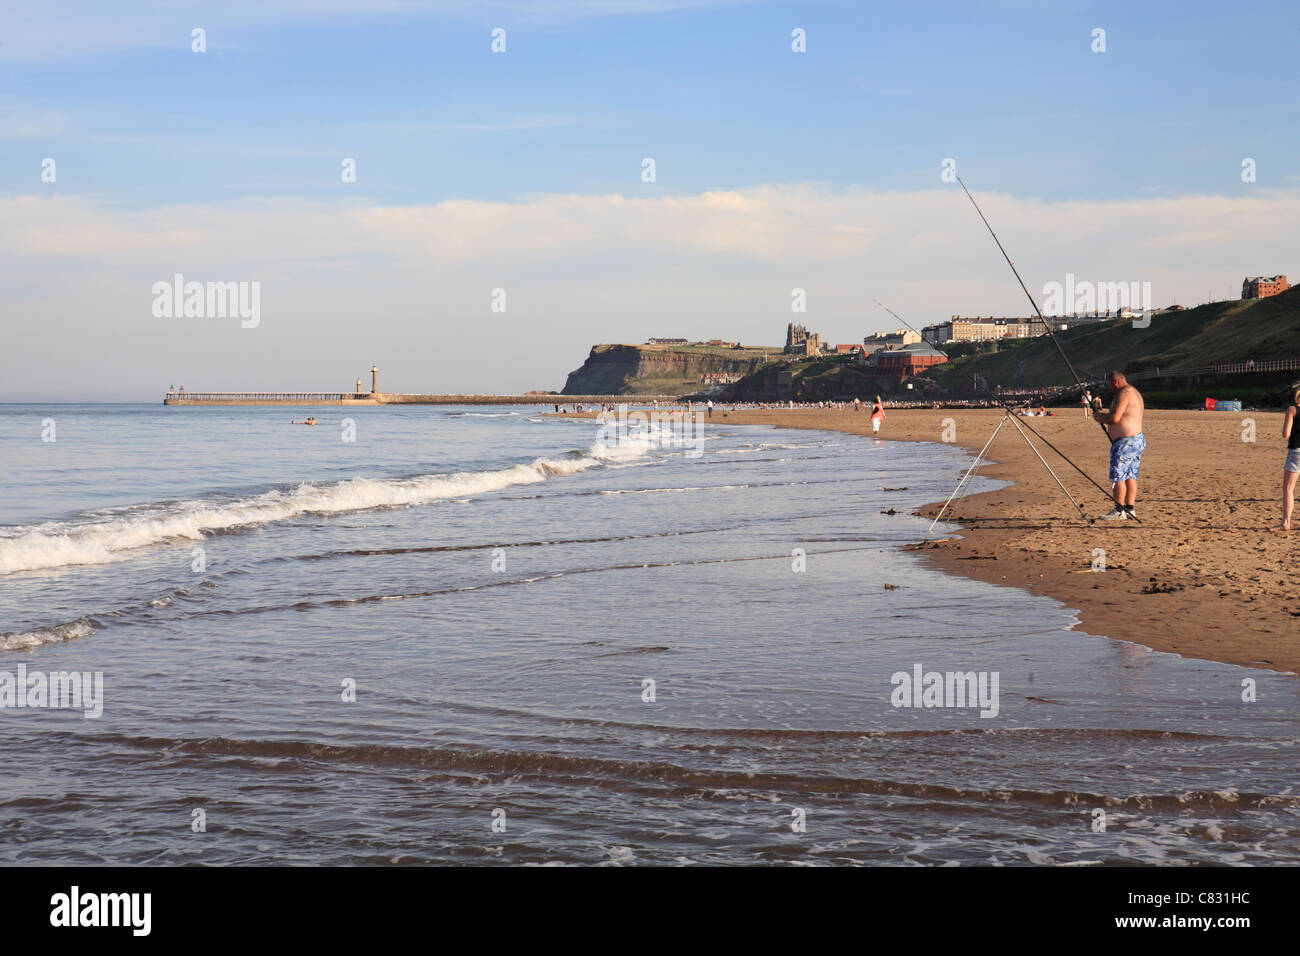 Mna fishing from the beach at Whitby, Yorkshire, England - Stock Image